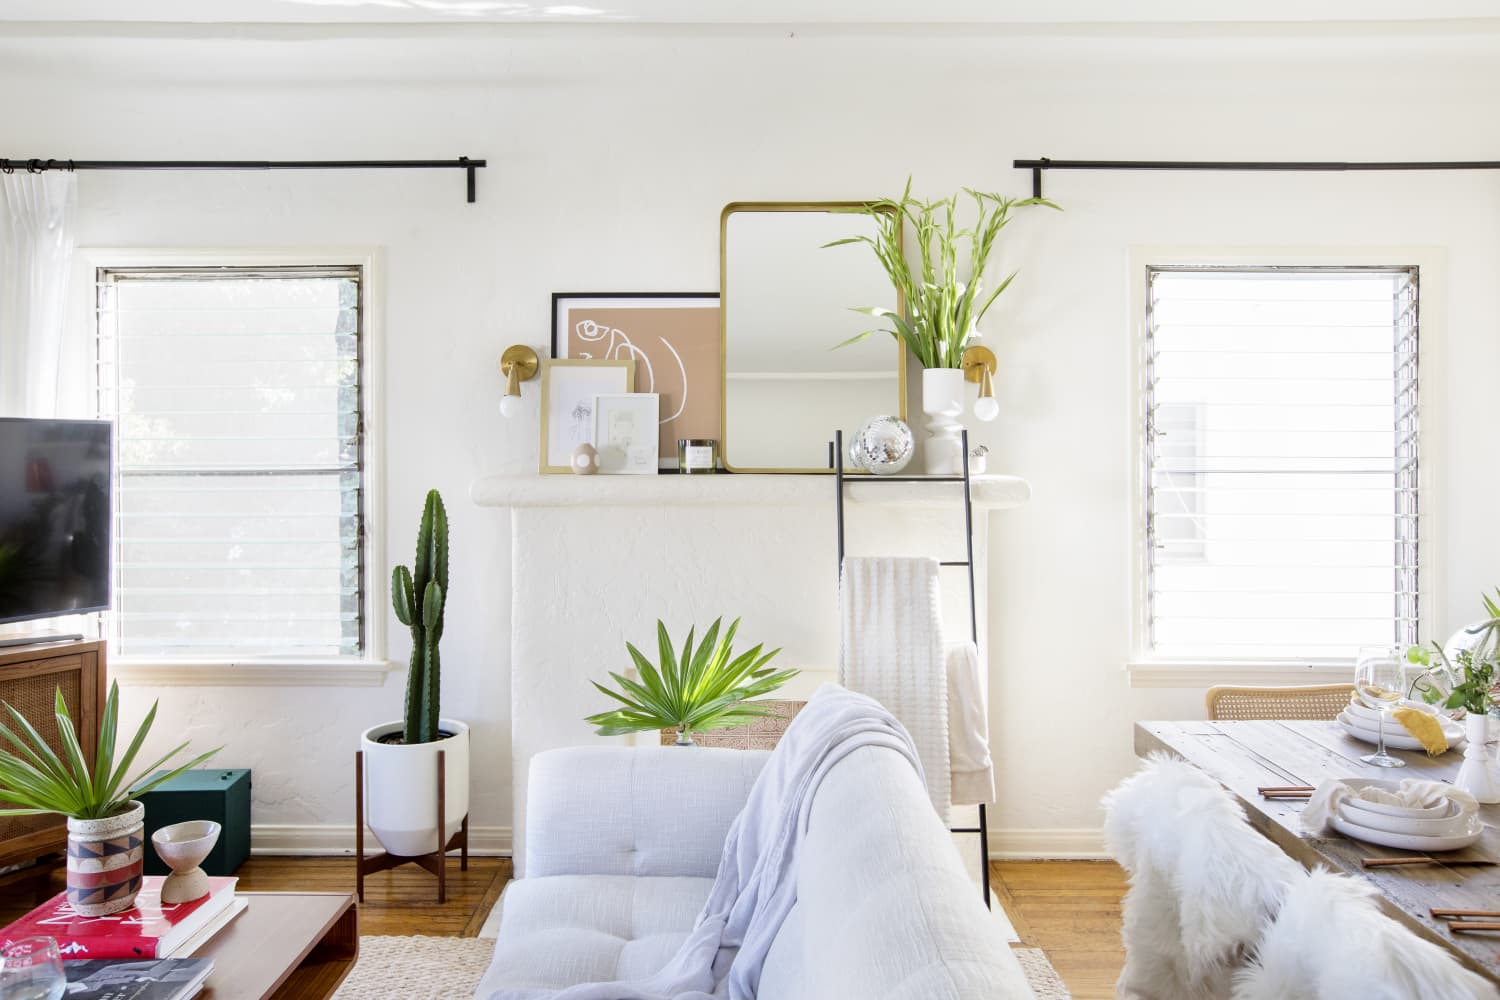 An Interior Designer's Stylish Home Sports Problem-Solving DIYs and a Smart Furniture Layout